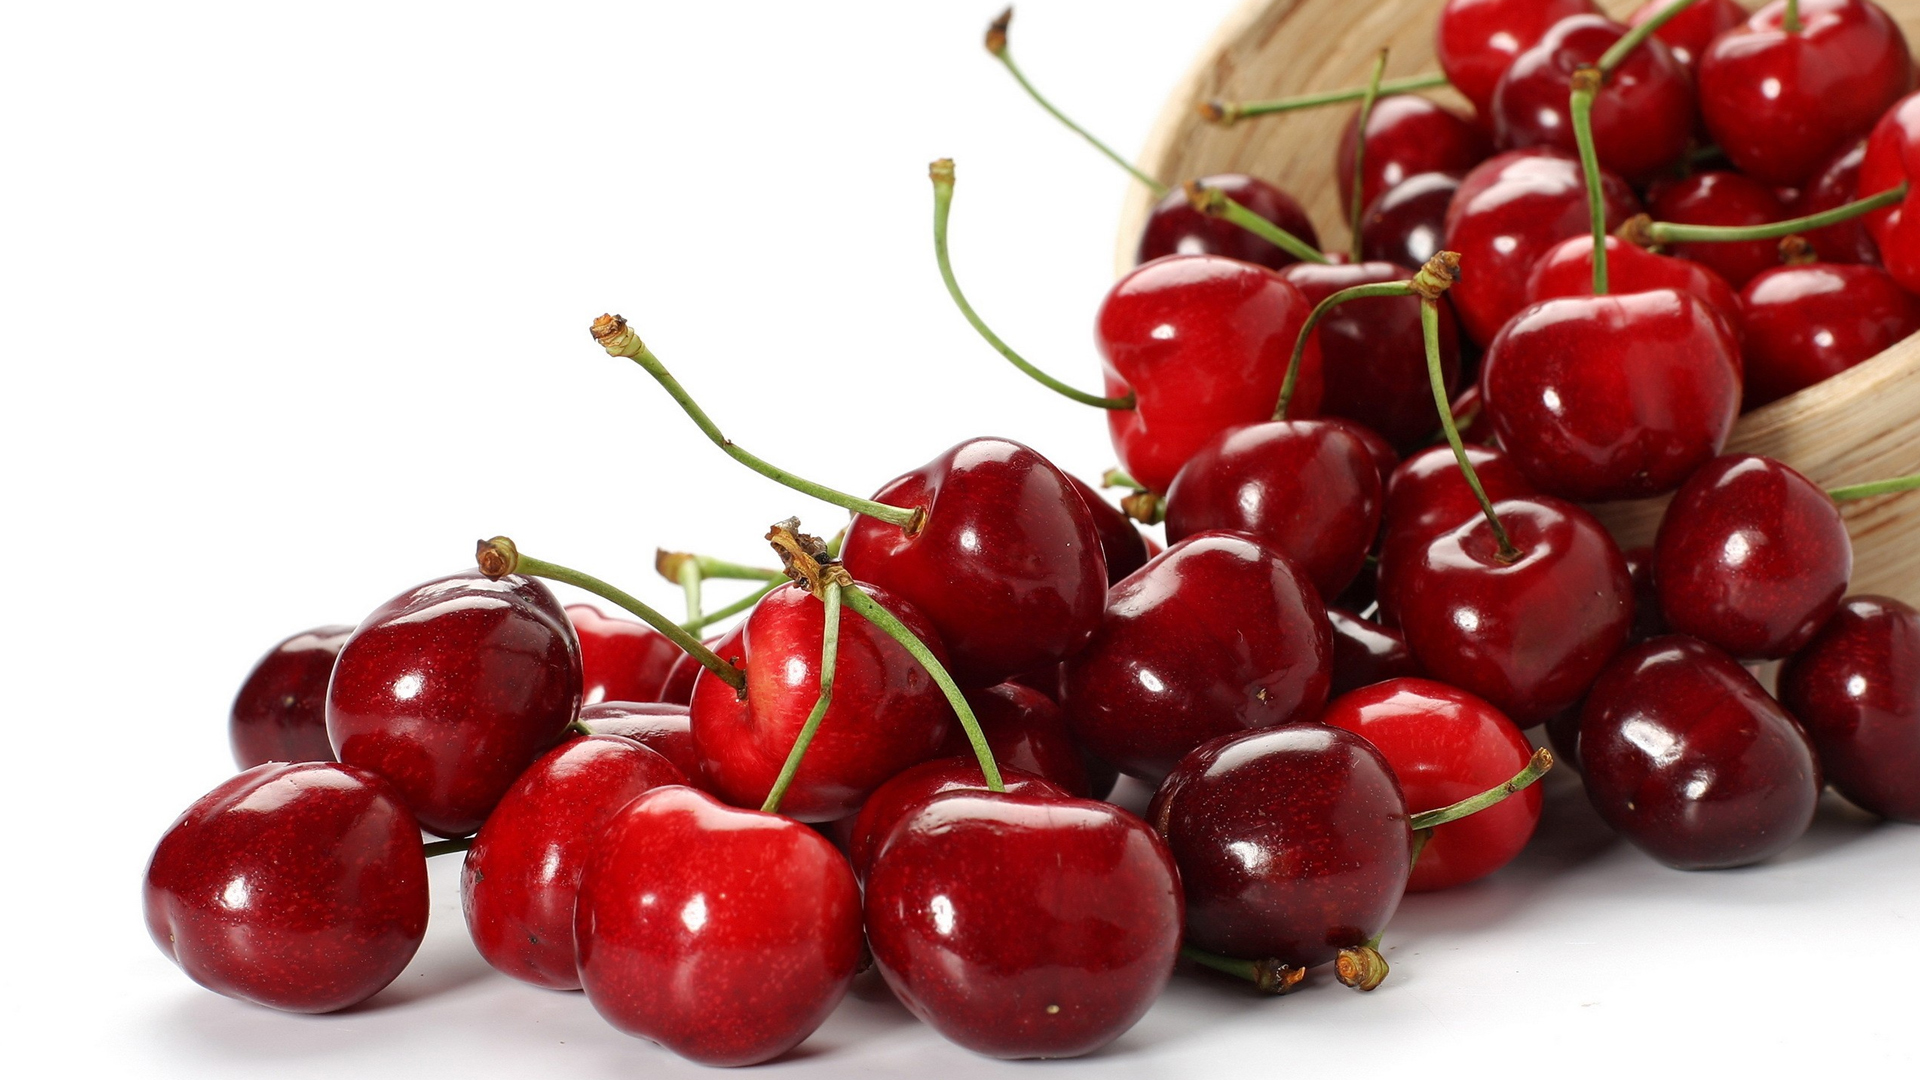 Cherry Pics, Food Collection